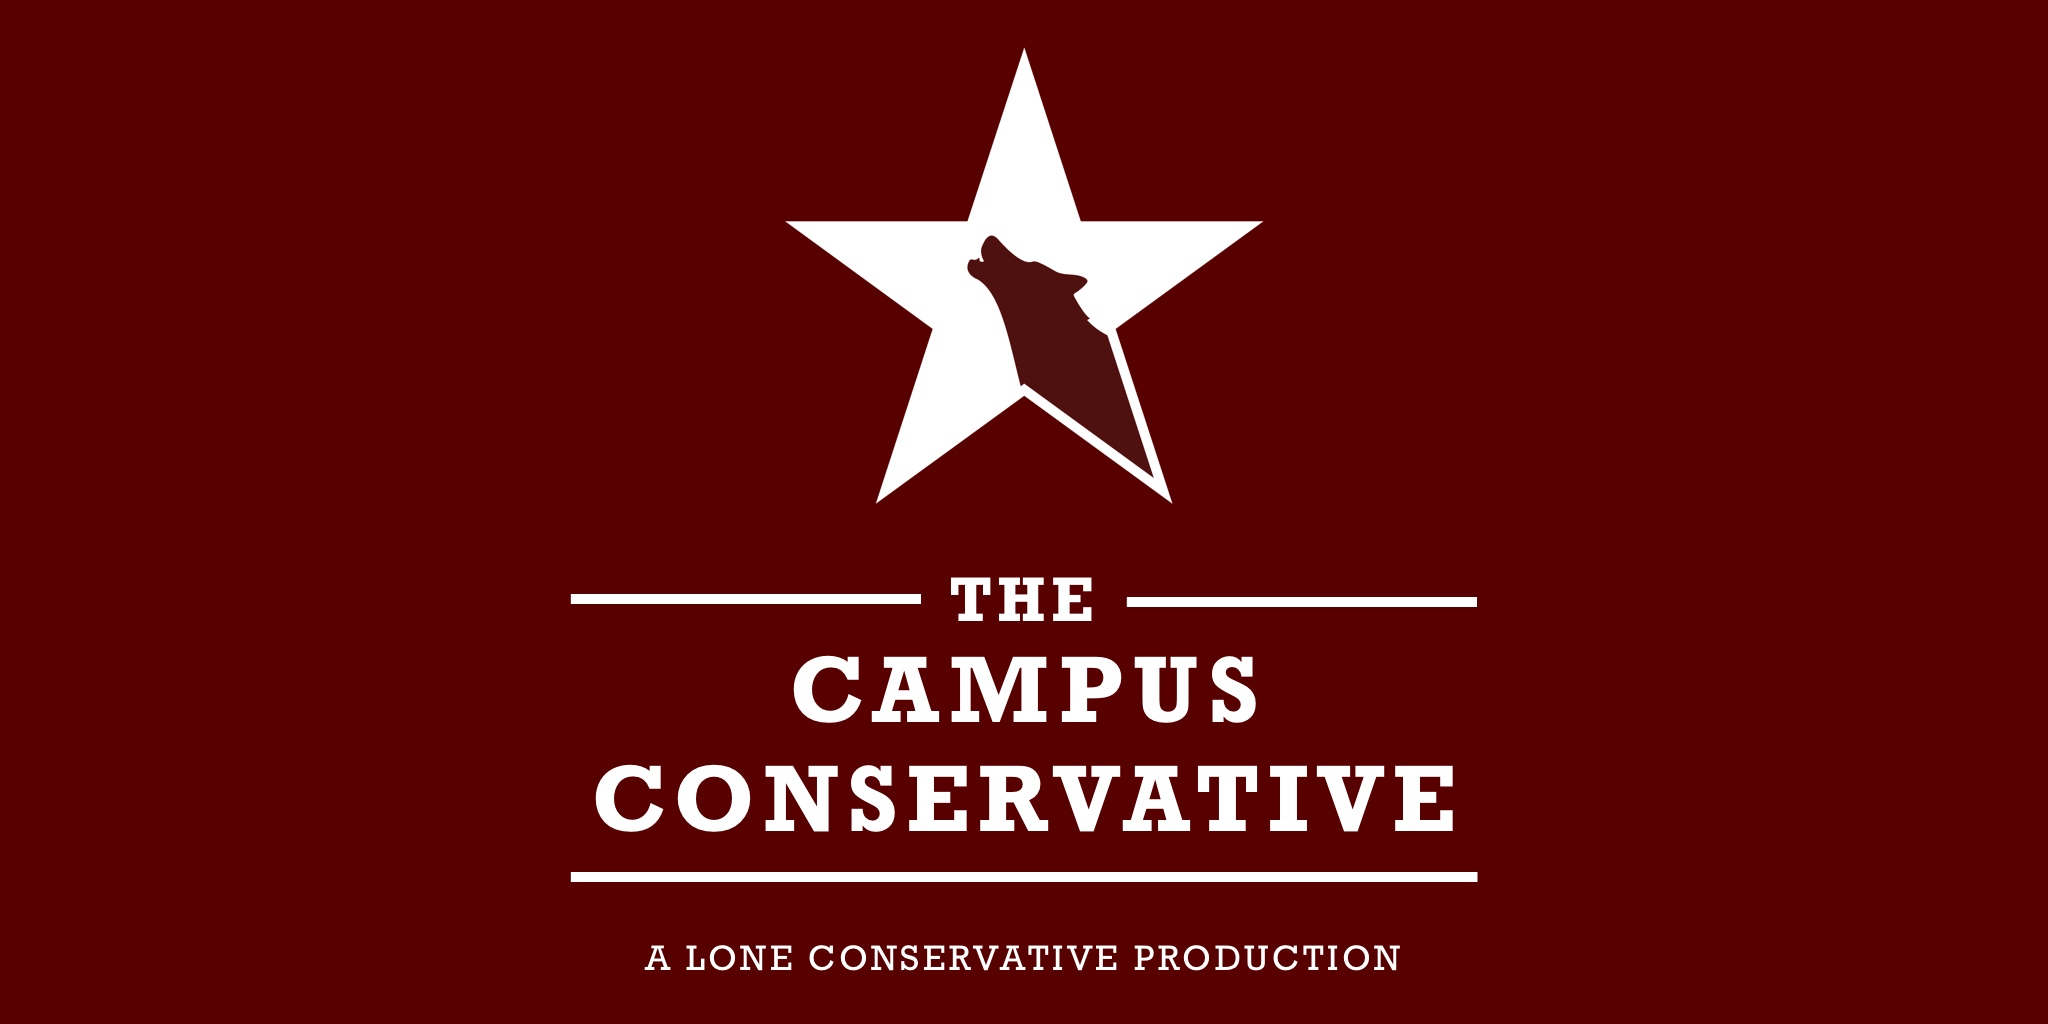 The Campus Conservative